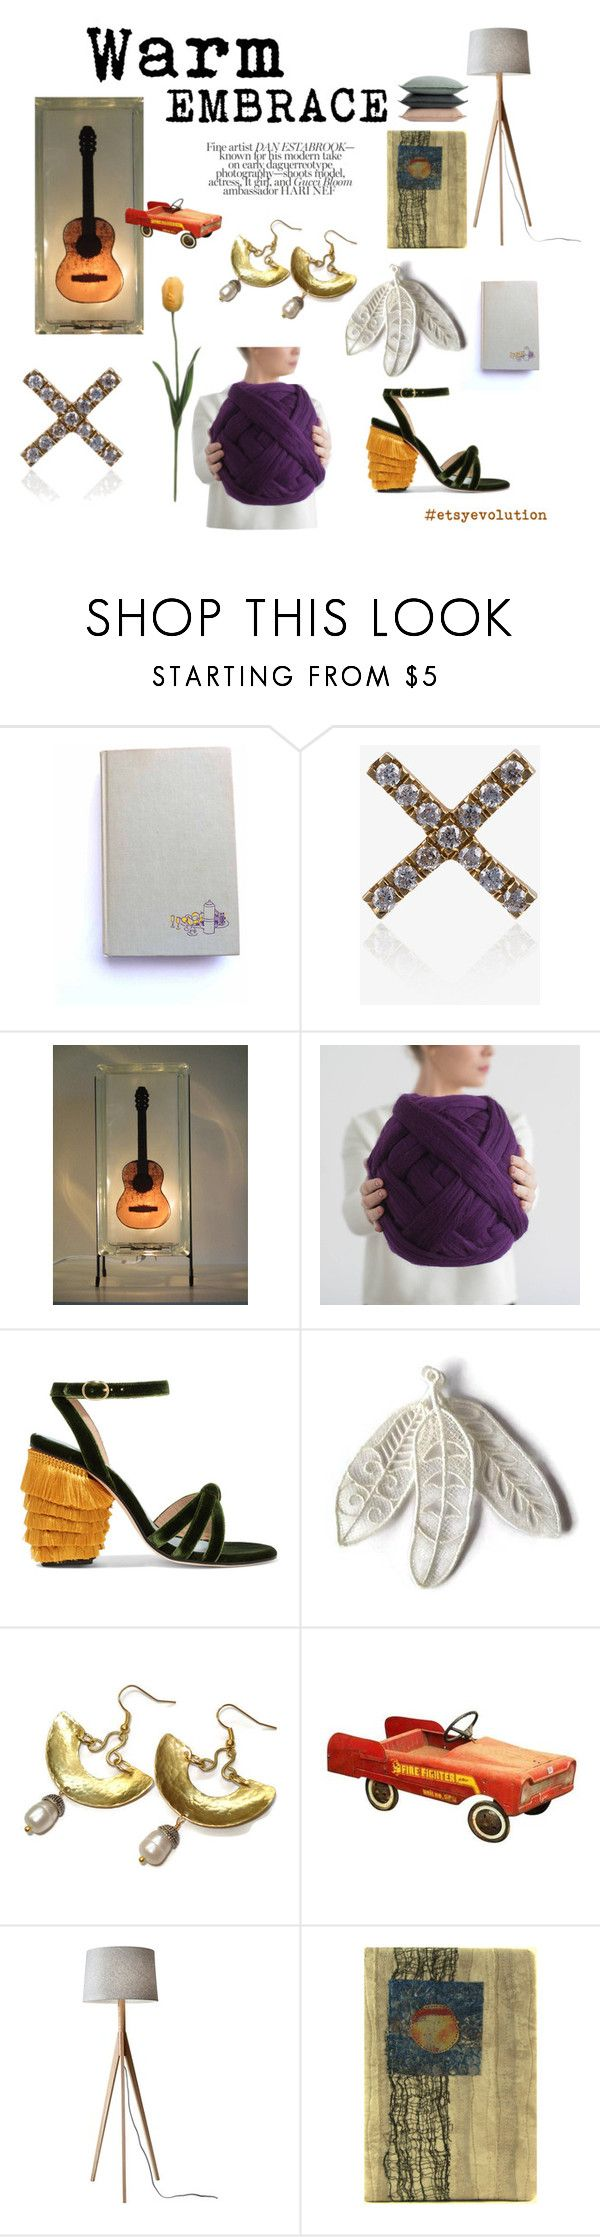 """""""warm embrace"""" by seasidecollectibles ❤ liked on Polyvore featuring Loquet, MR by Man Repeller, Design Within Reach and vintage"""